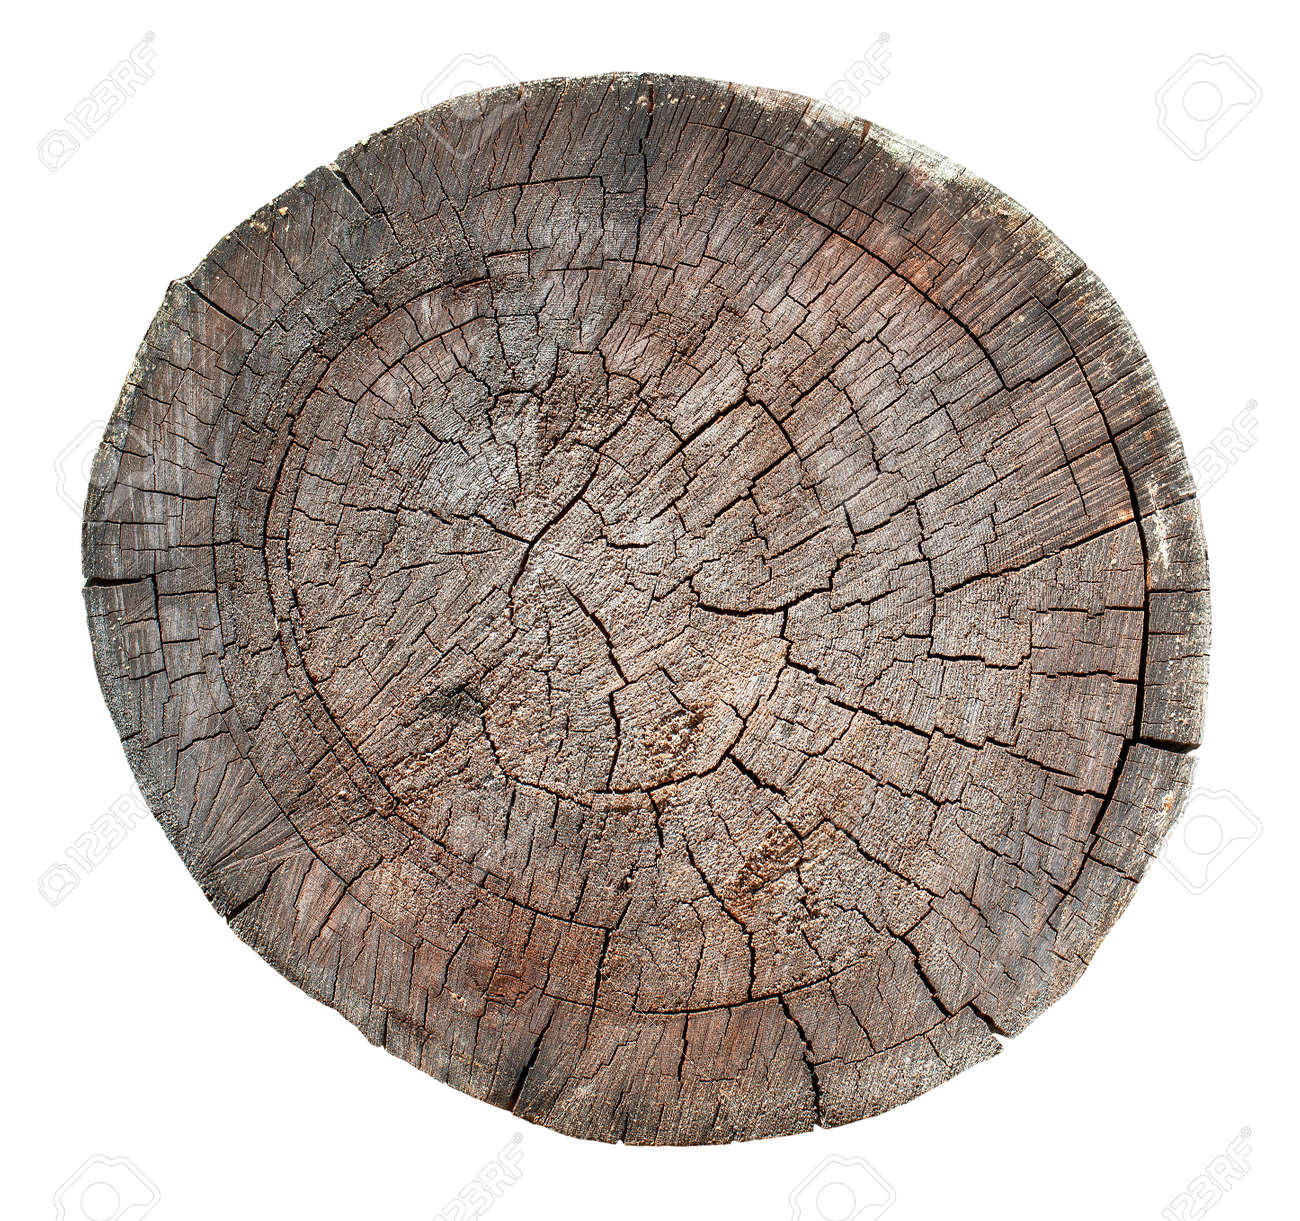 The Wooden old stump, wood texture background isolate on white - 157440734